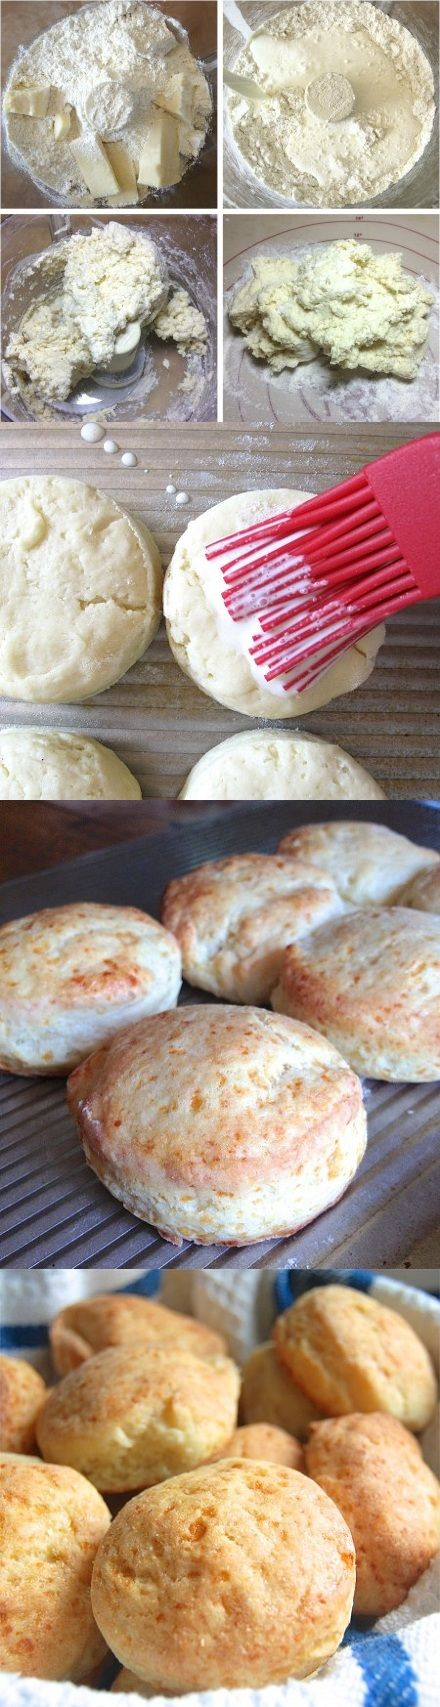 Cheddar Cheese Biscuits Recipe